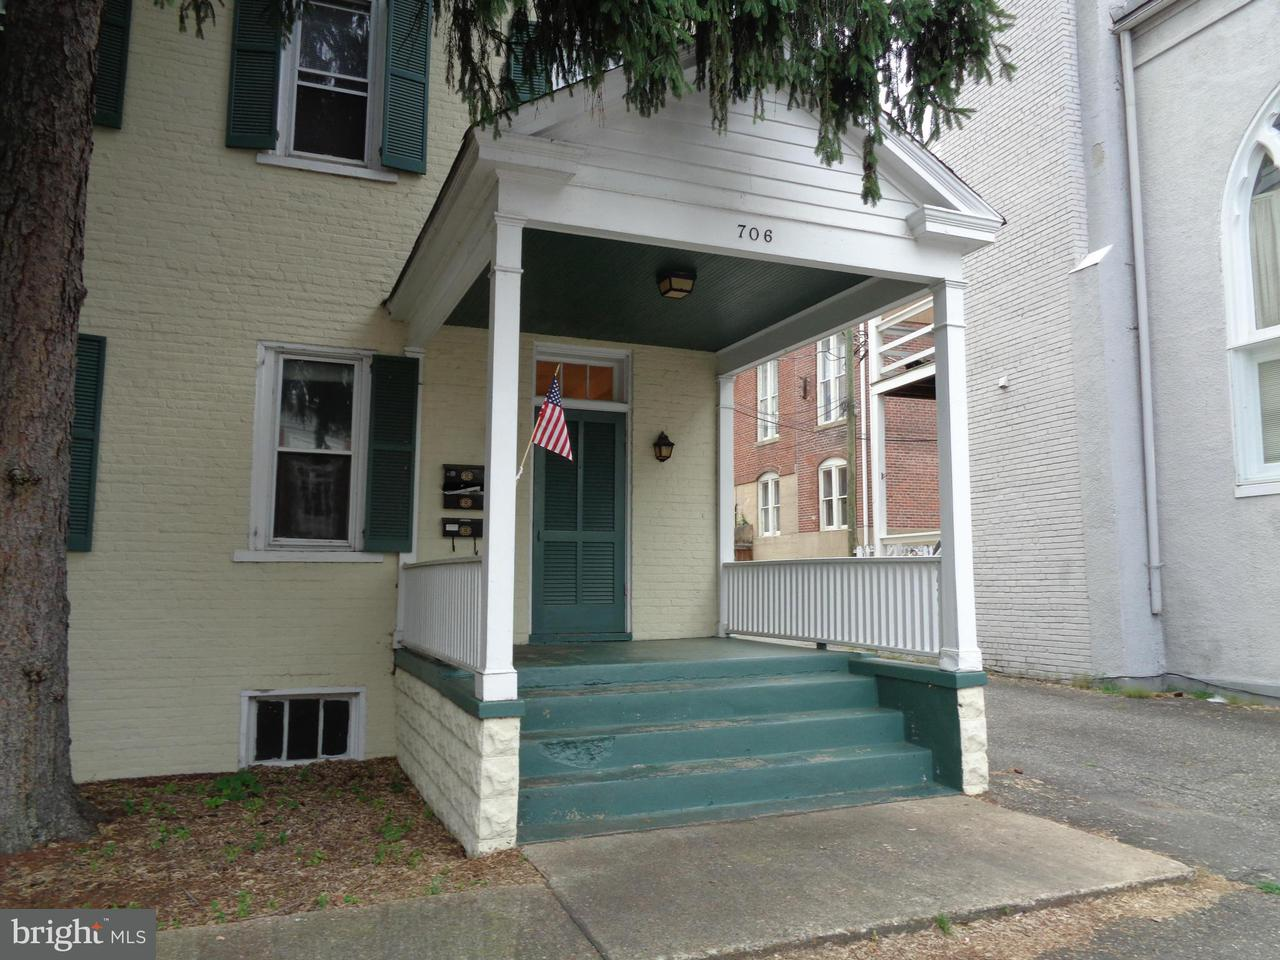 Commercial for Sale at 706 Princess Anne St Fredericksburg, Virginia 22401 United States